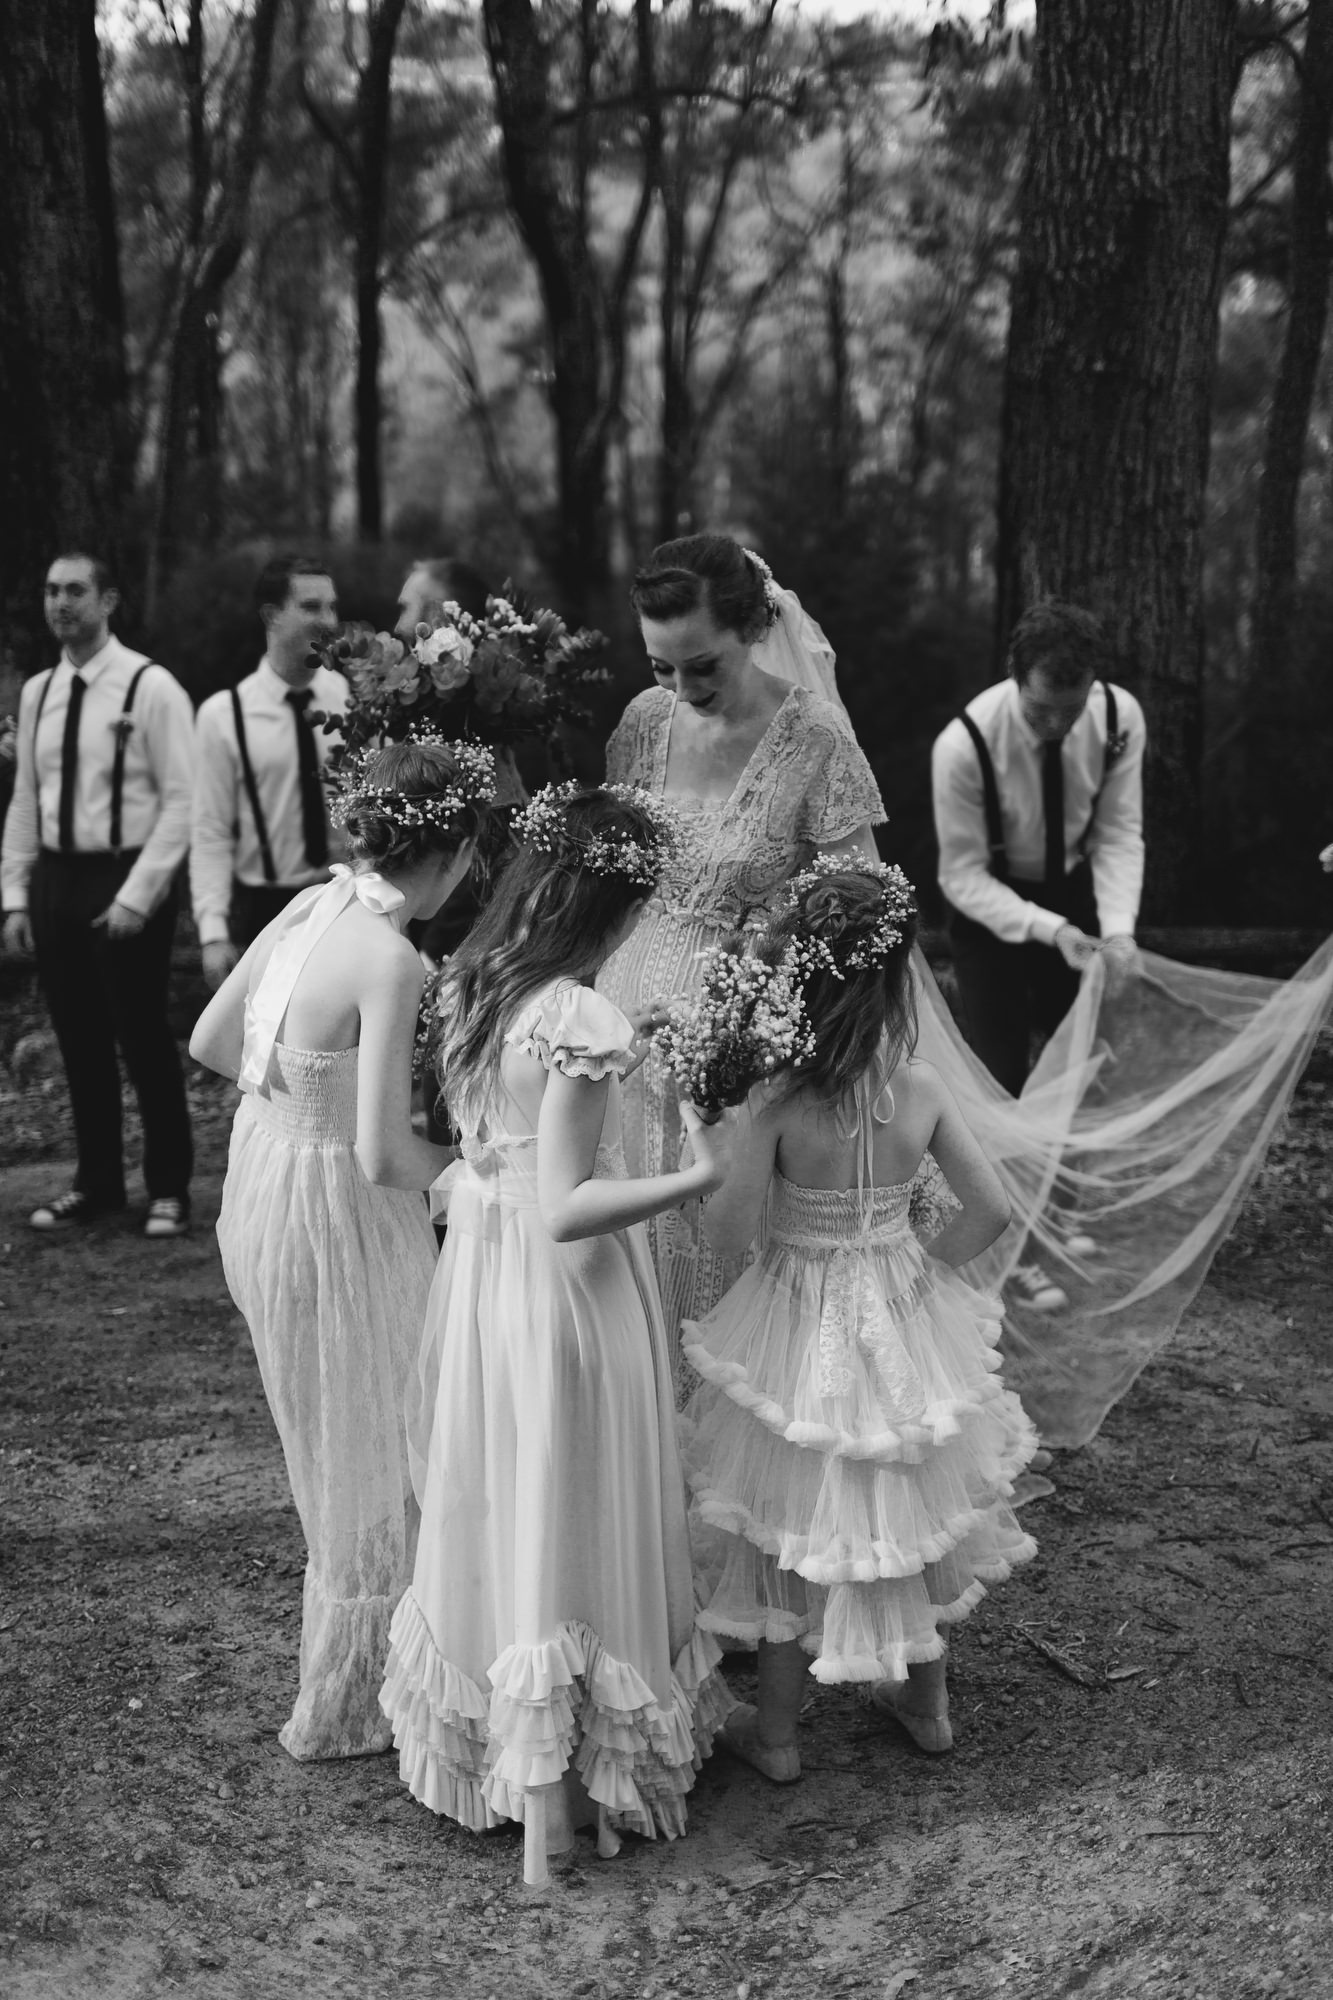 CARTER-ROSE-PHOTOGRAPHY-NICHOLAS-WEDDING-NANGA-BUSH-CAMP353.JPG